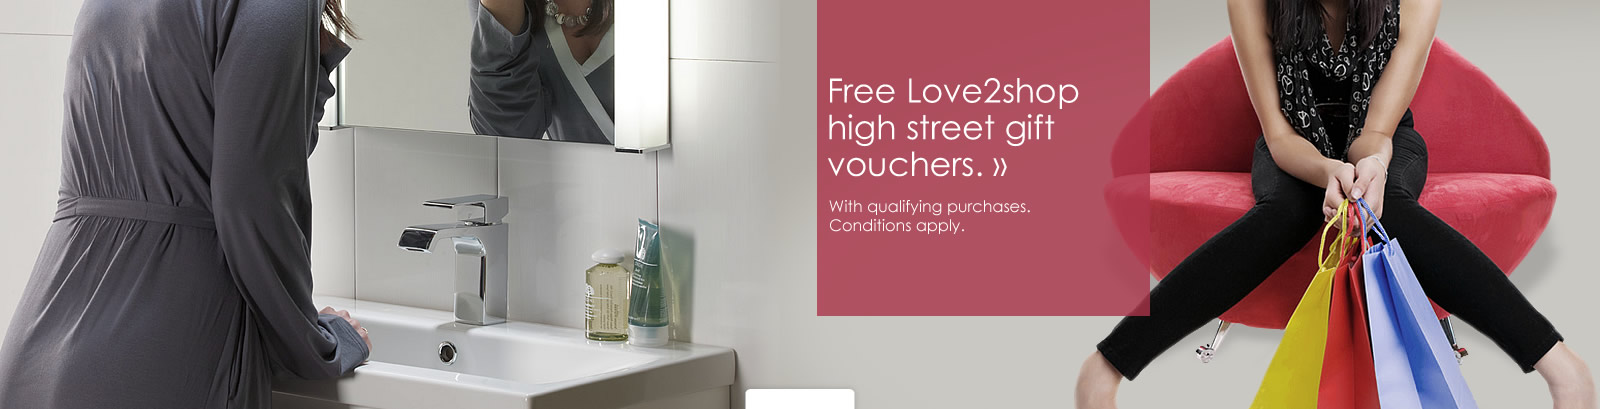 Free Love2shop high street gift vouchers with qualifying purchases